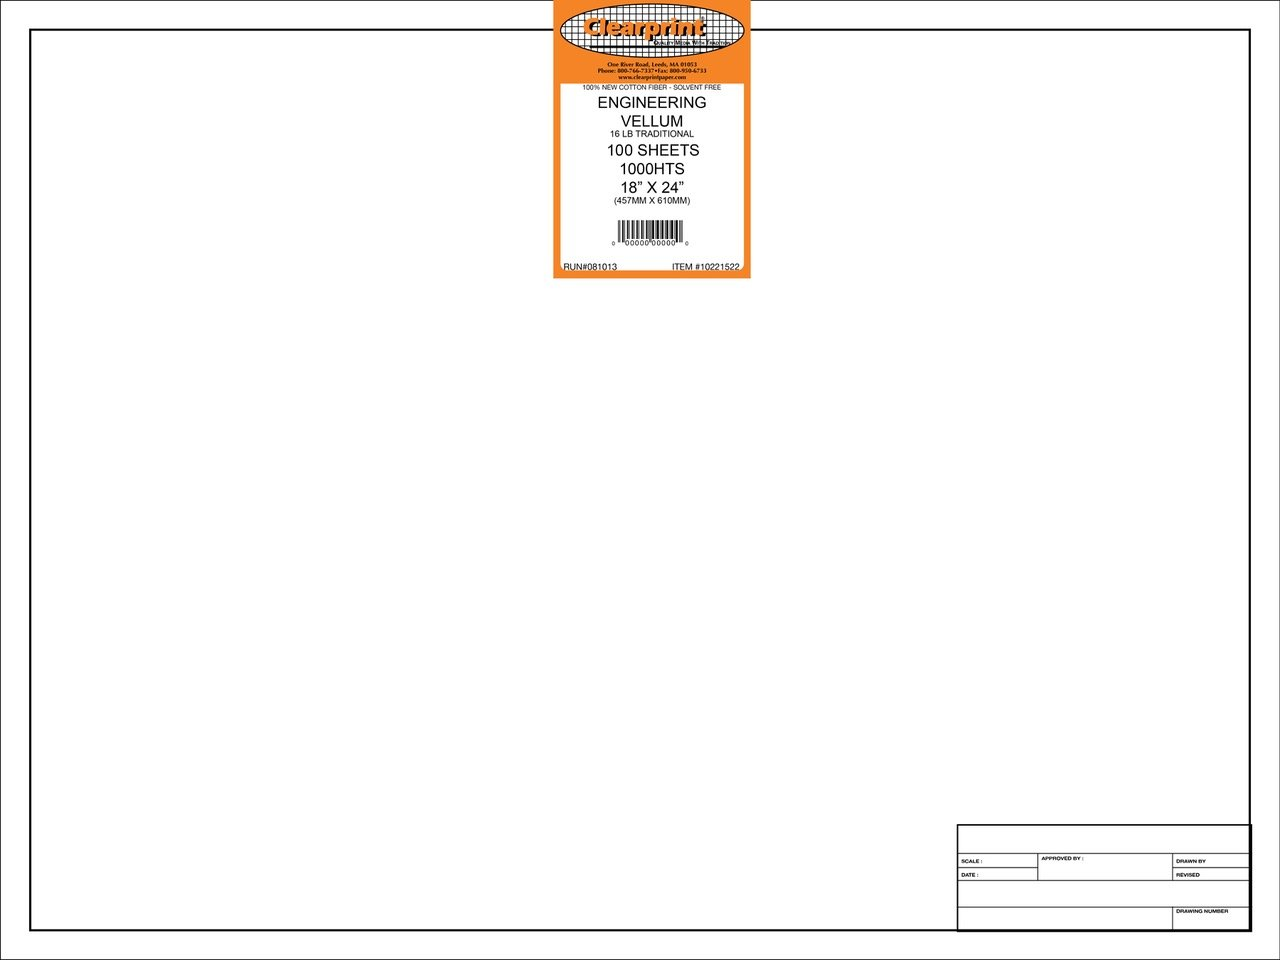 Clearprint 1000H Design Vellum Sheets with Engineer Title Block, 16 lb, 100% Cotton, 18 x 24 Inches, 100 Sheets Per Pack, Translucent White (10221522)